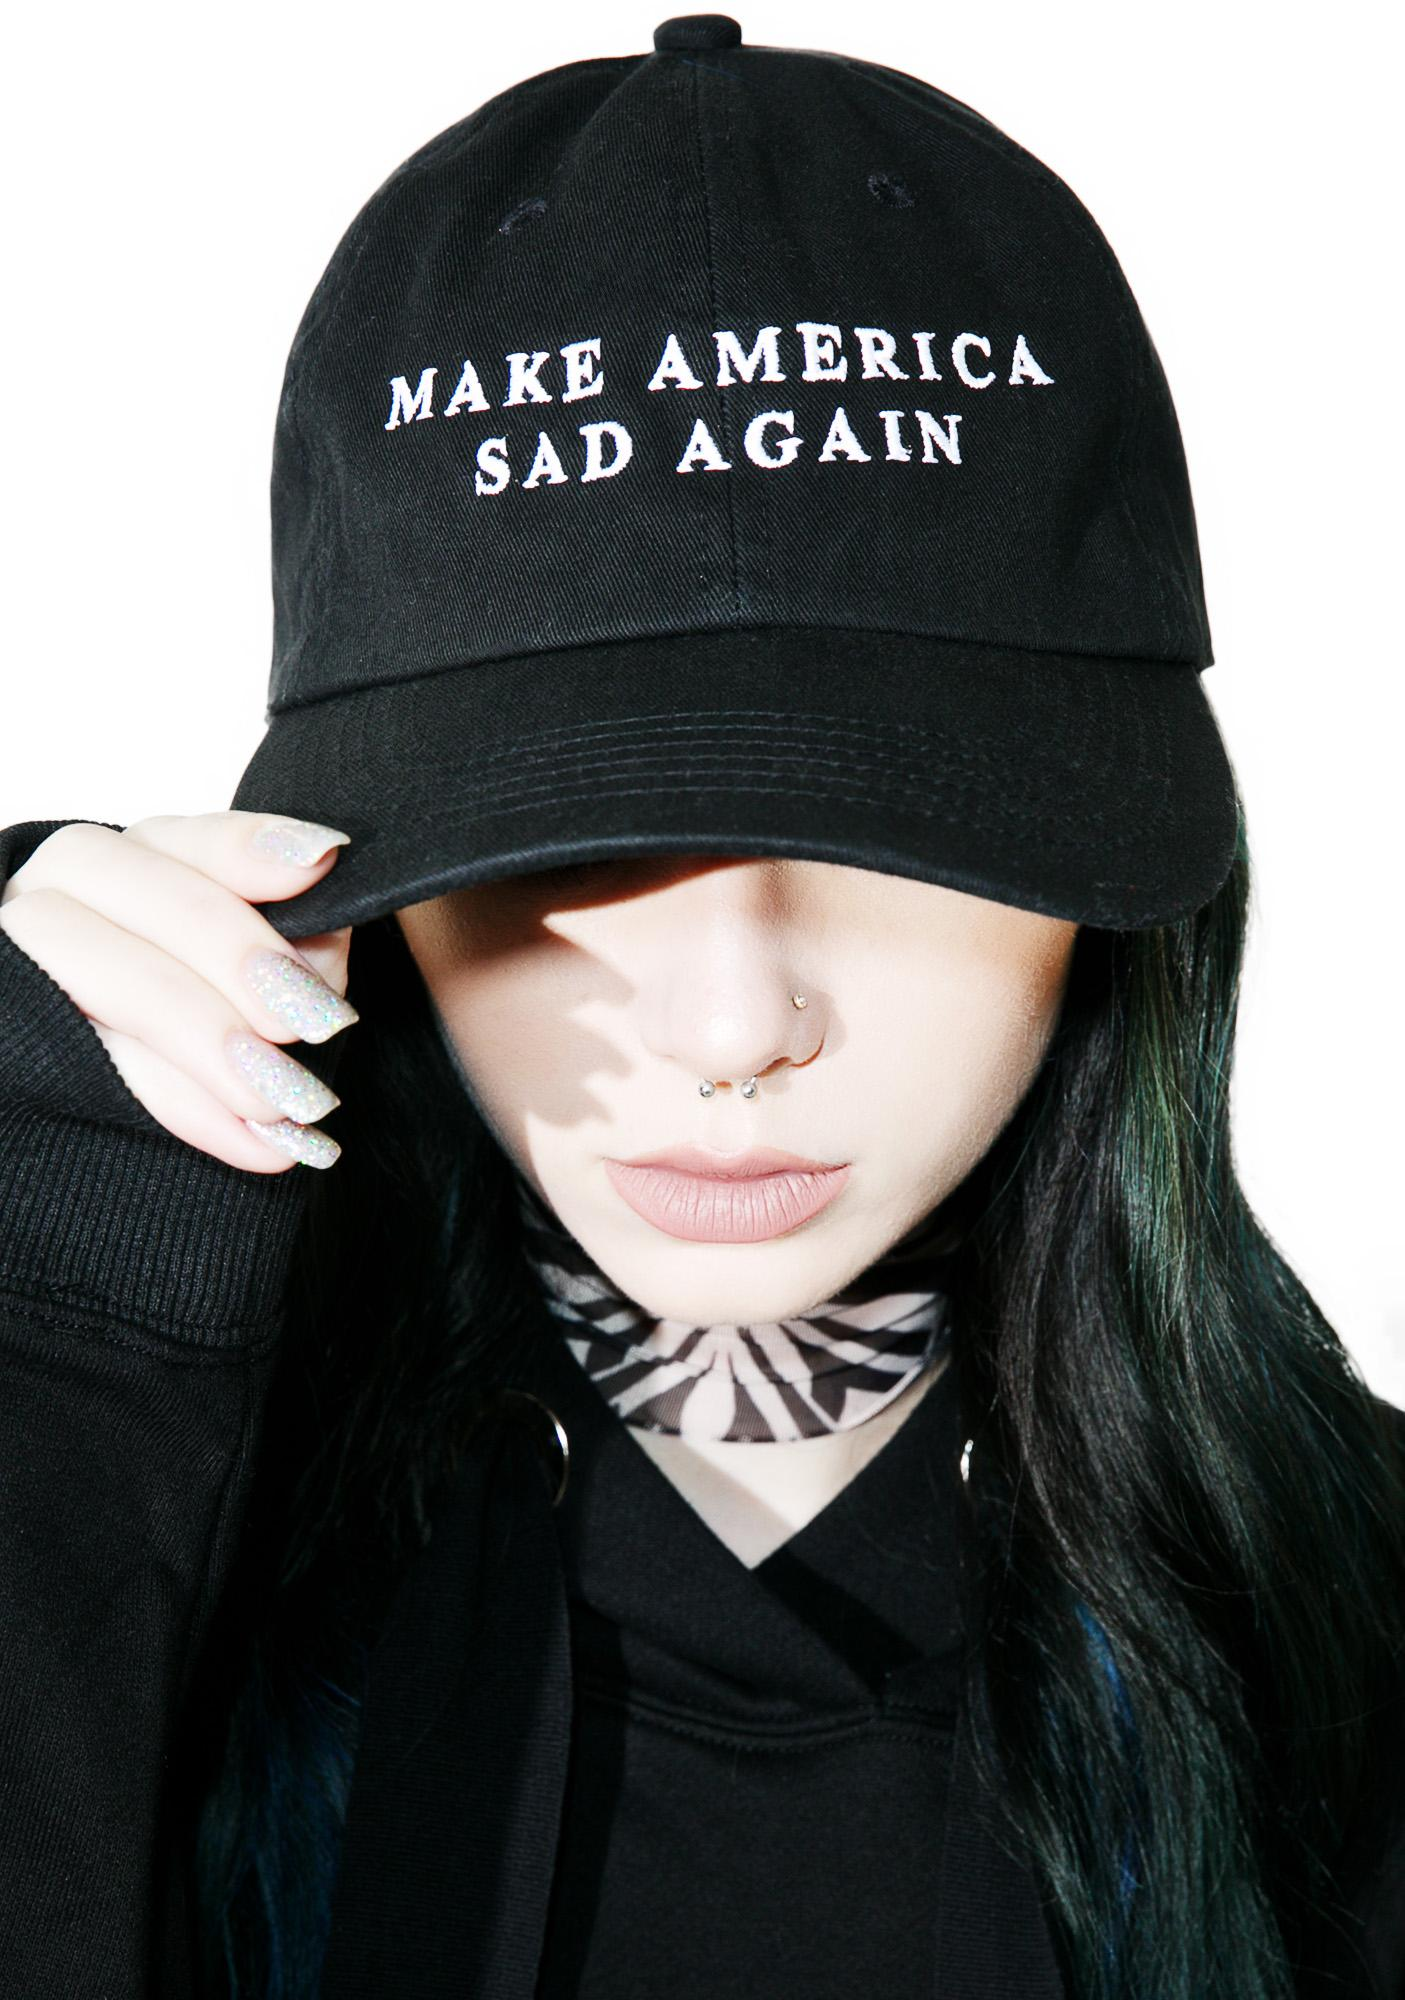 Sad Boy Crew Make America Sad Again Hat